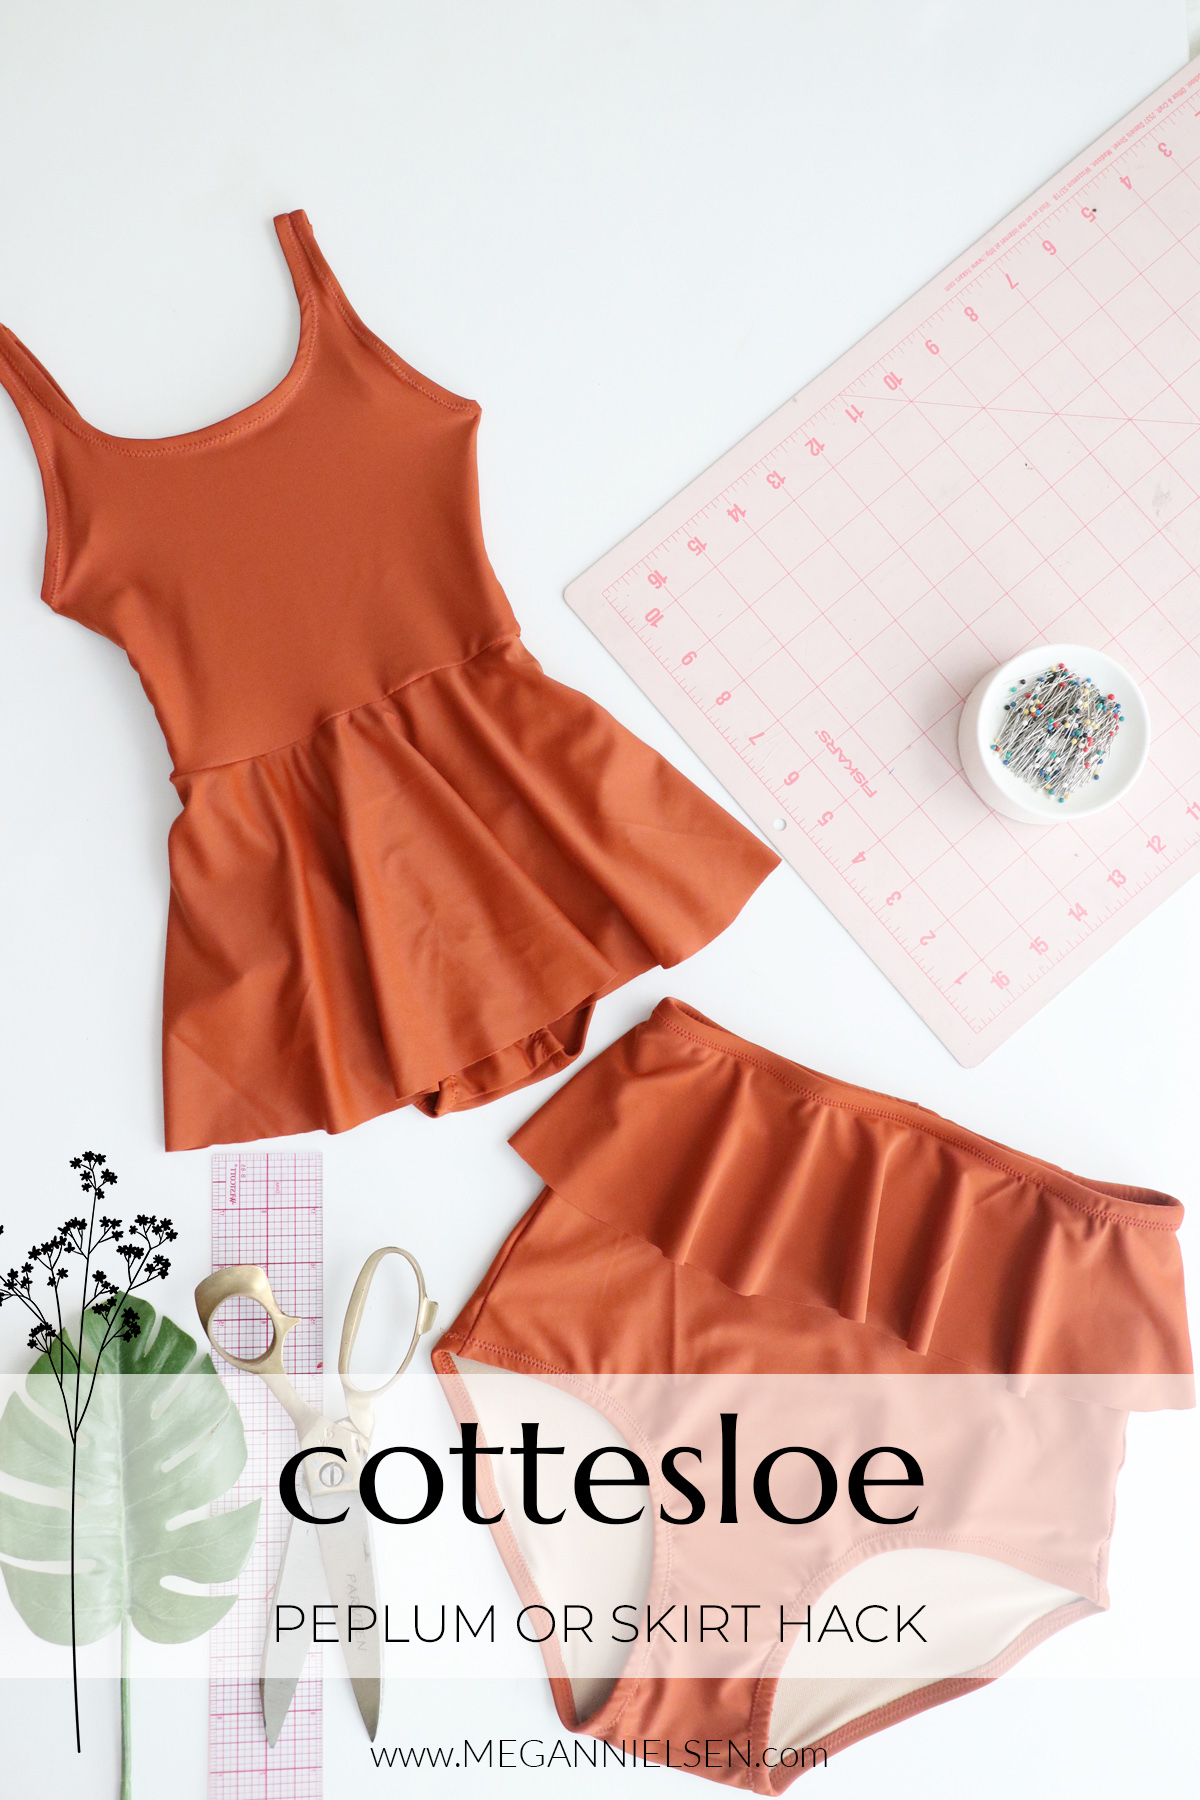 How to add a skirt or peplum to the Cottesloe swim suit by Megan Nielsen patterns